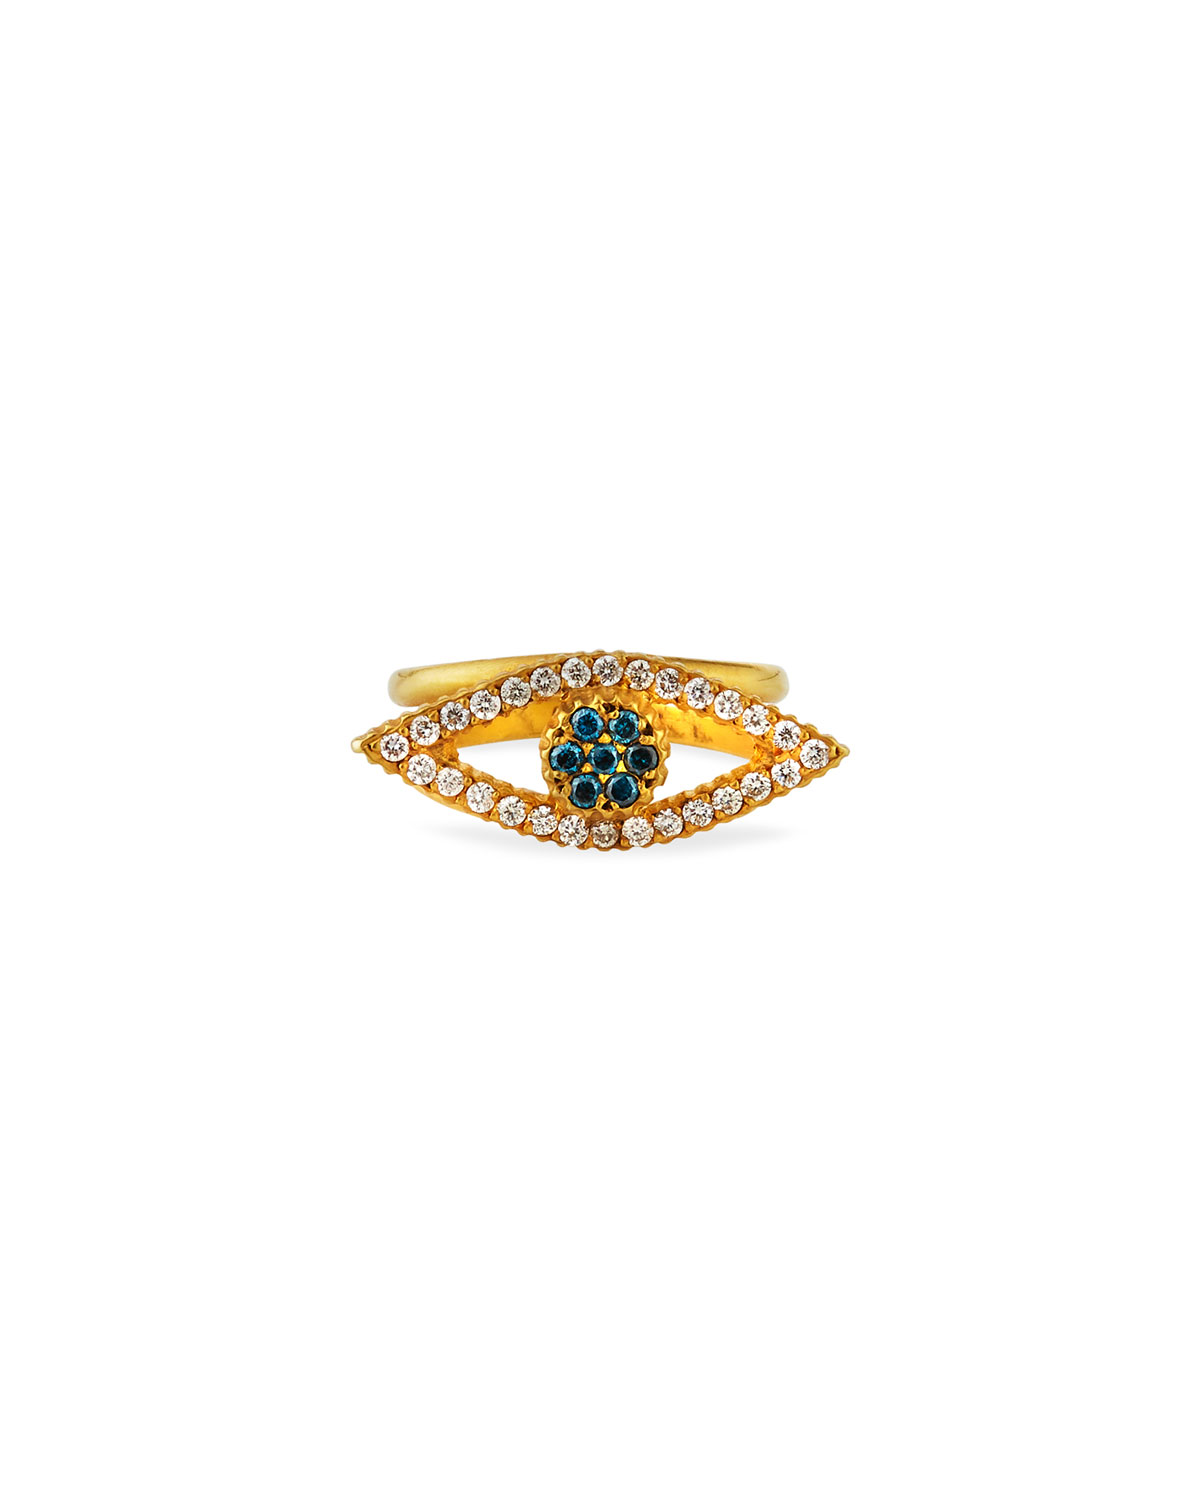 Yossi Harari Liliah 18k Blue & White Diamond Eye Ring